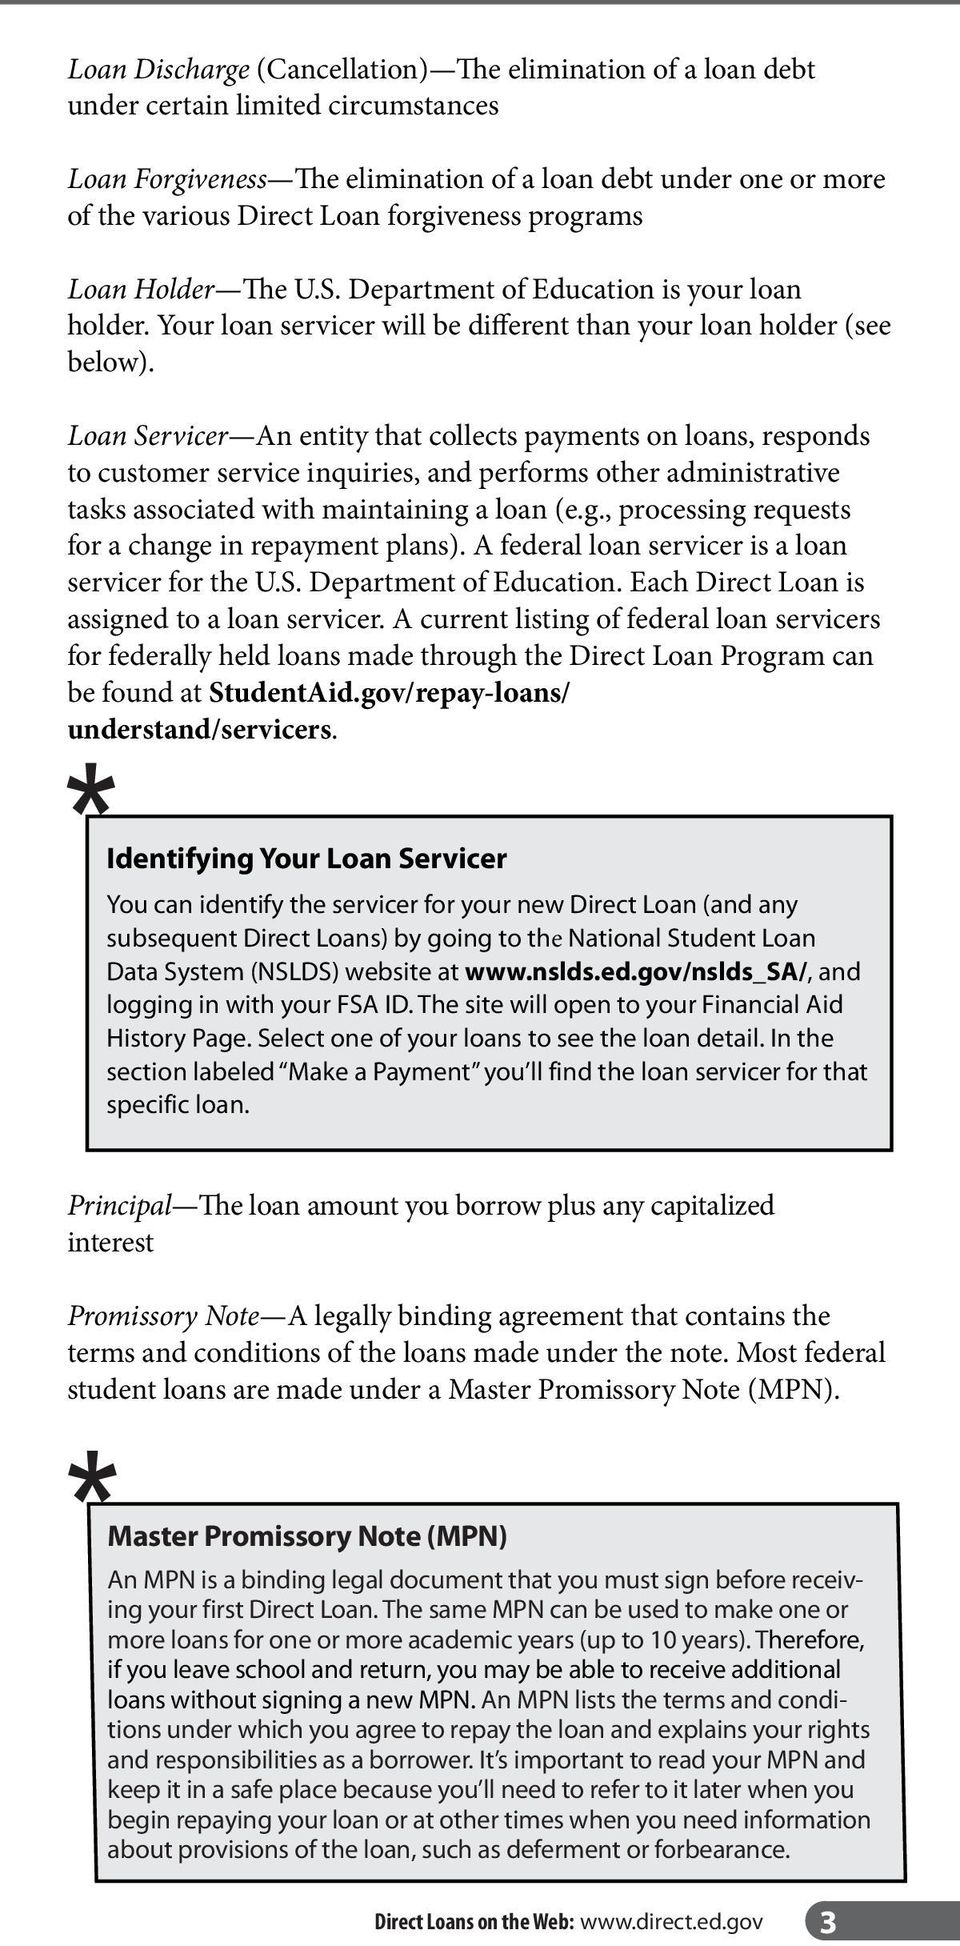 Loan Servicer An entity that collects payments on loans, responds to customer service inquiries, and performs other administrative tasks associated with maintaining